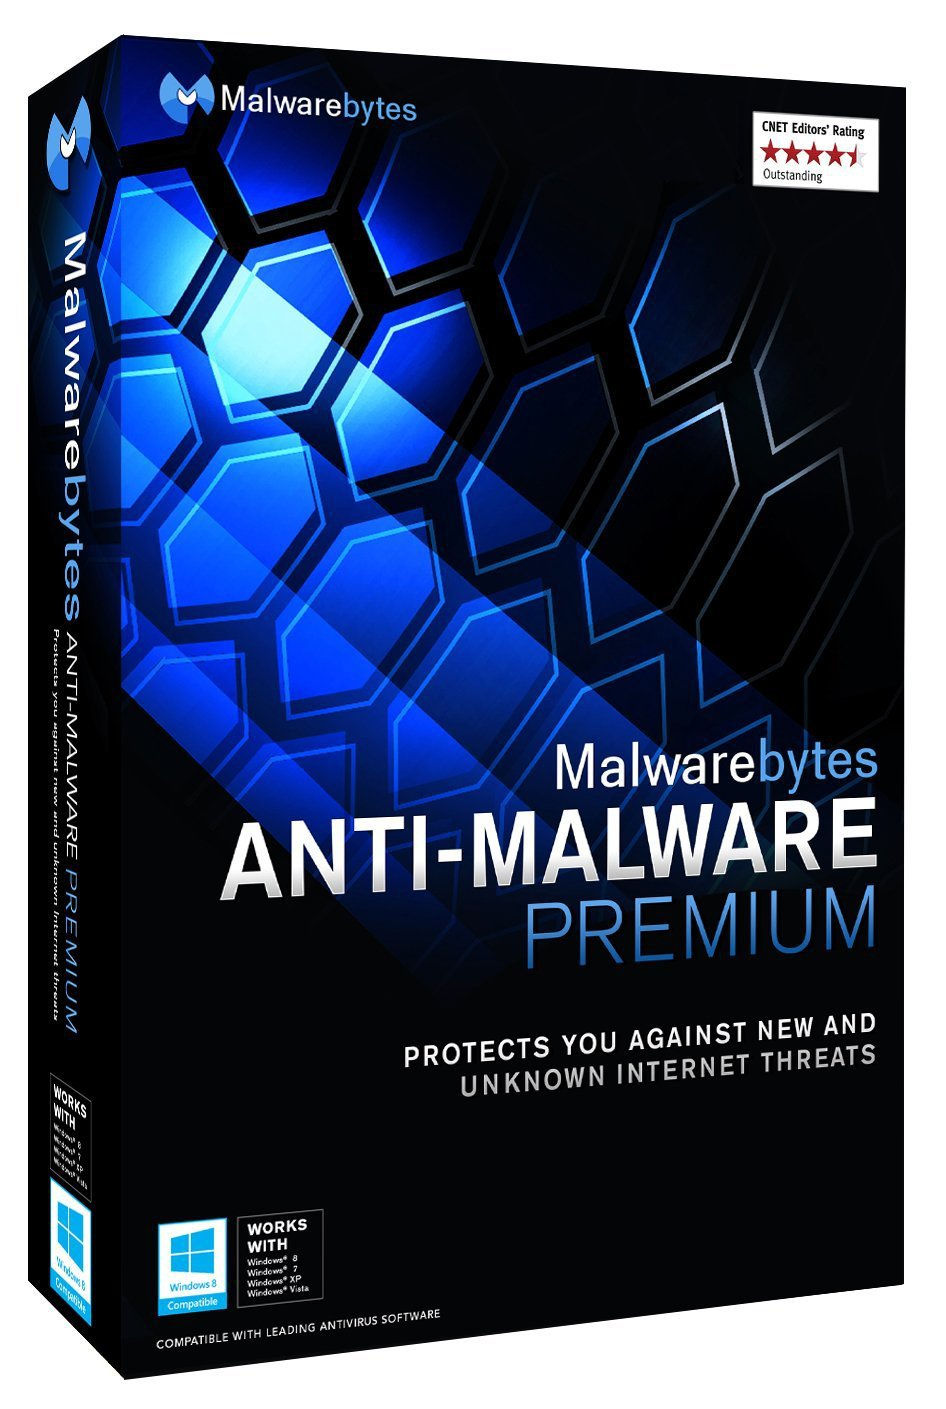 Malwarebytes Anti-Malware 4.1.2.173 Crack With Keygen + Free Download 2020